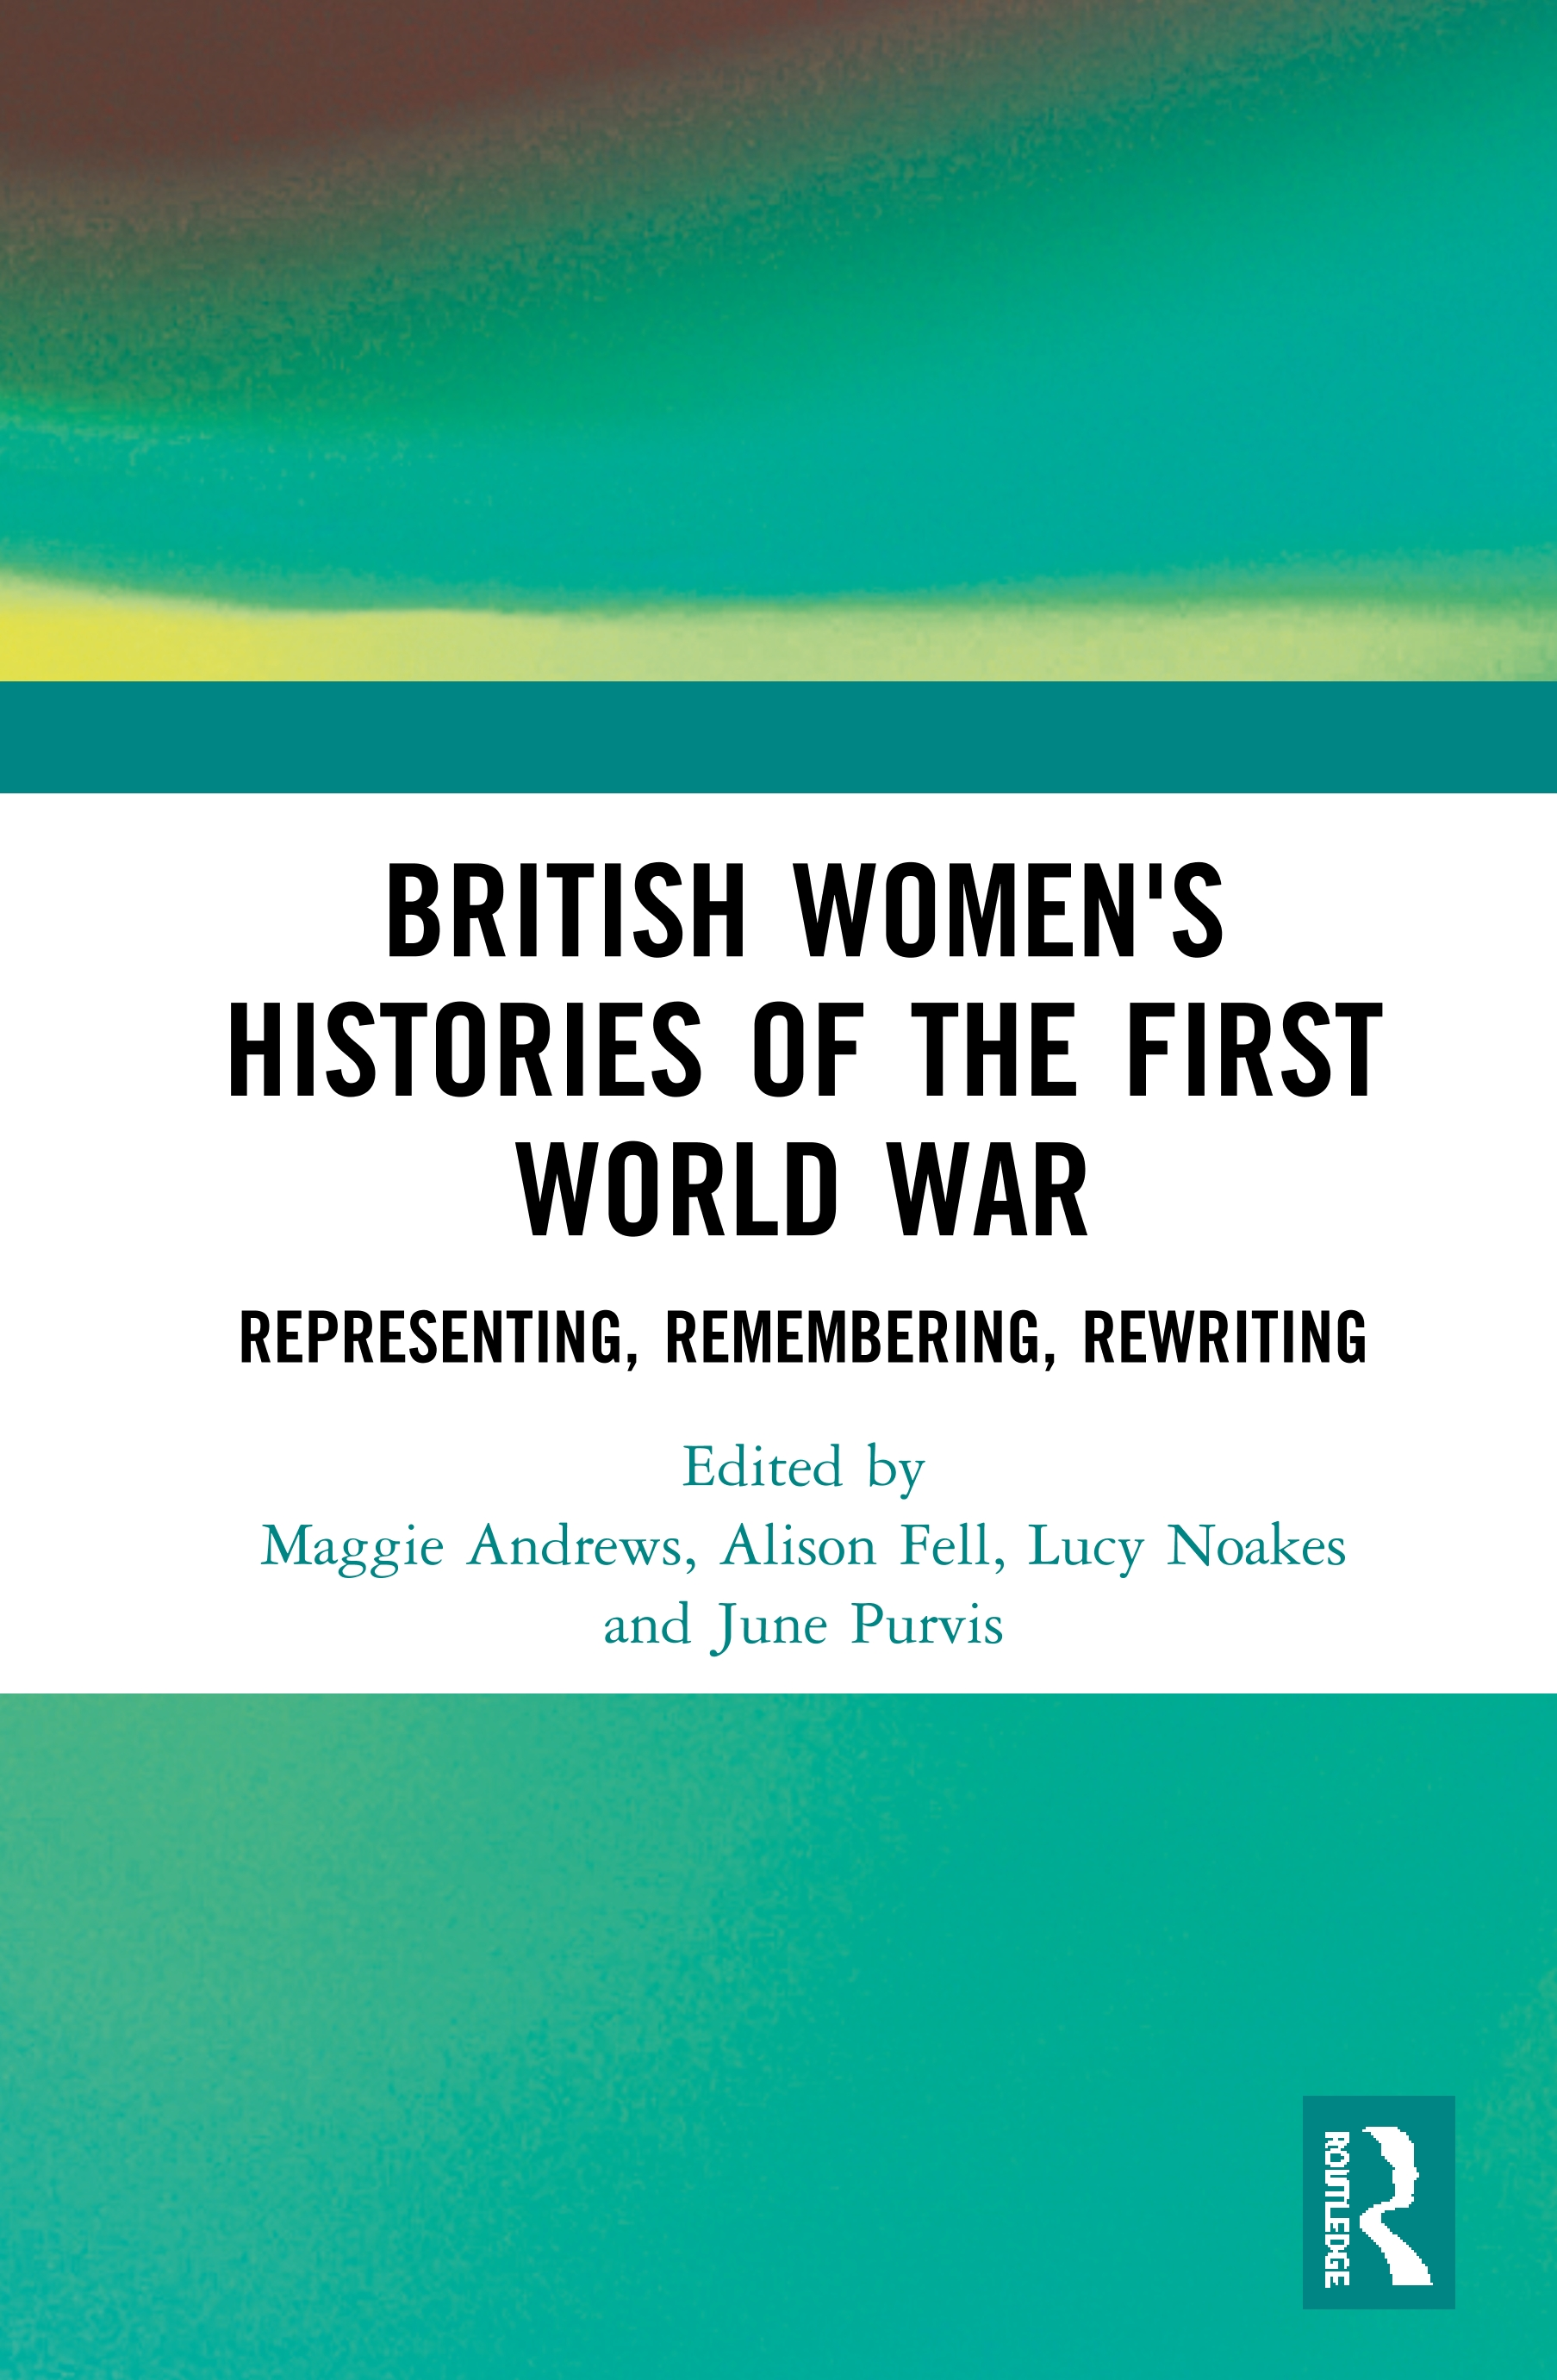 British Women's Histories of the First World War: Representing, Remembering, Rewriting book cover